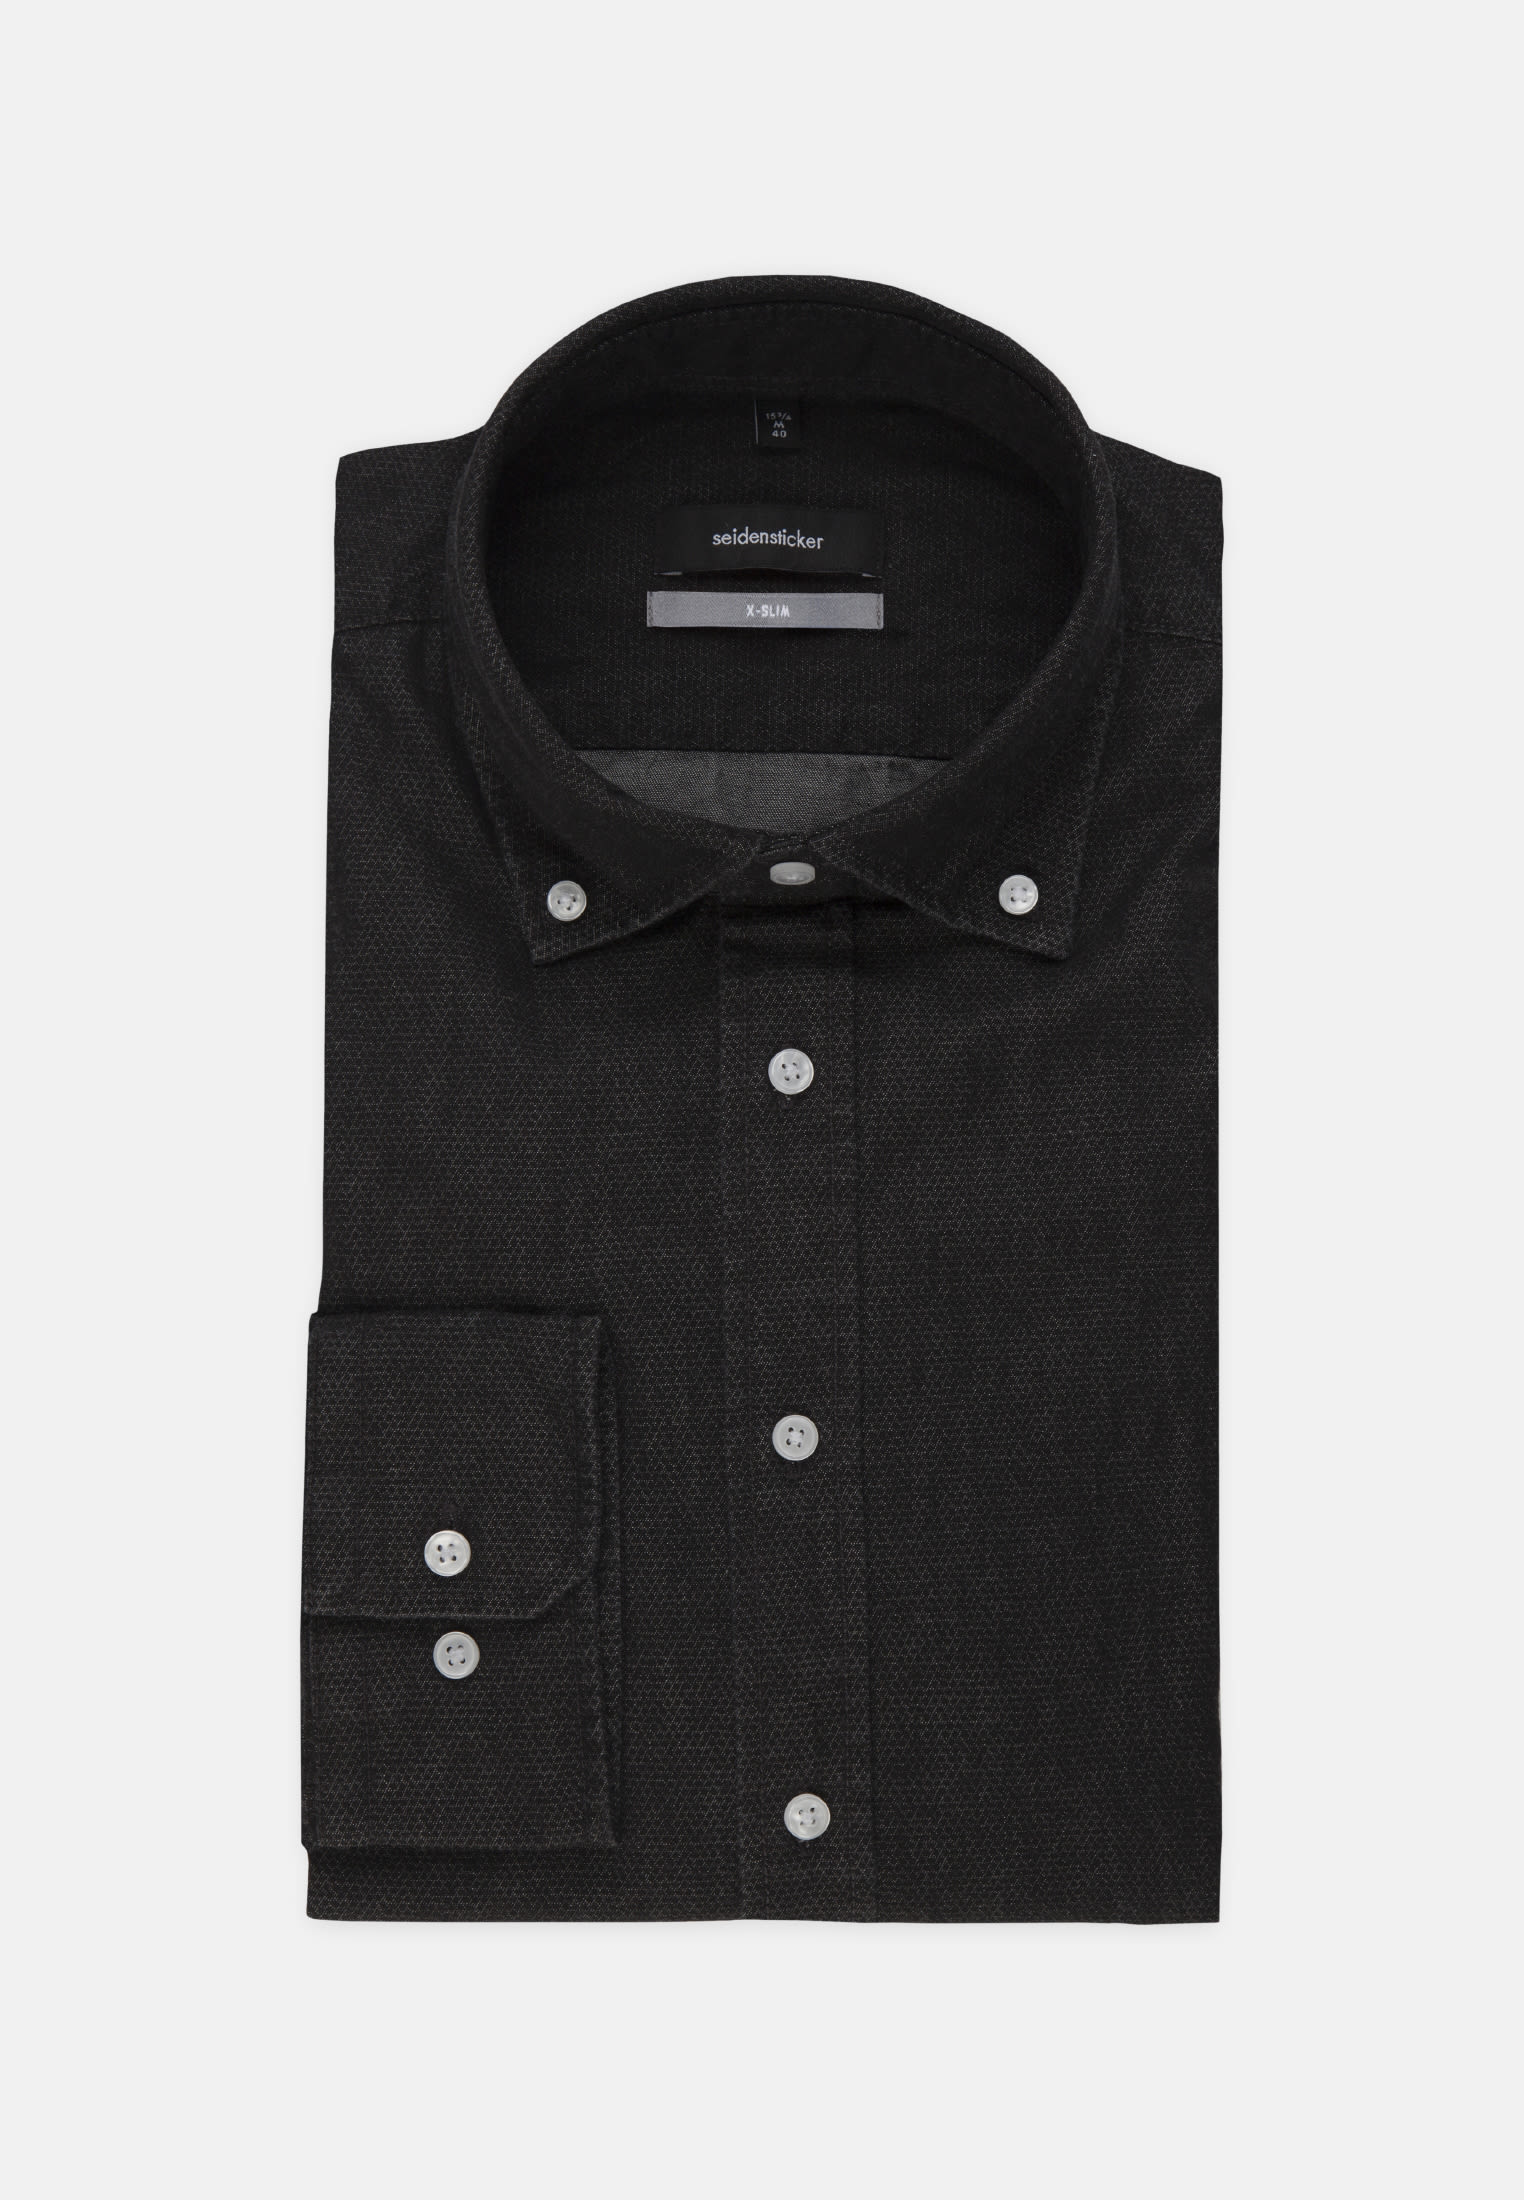 Bügelleichtes Denim Business Hemd in X-Slim mit Button-Down-Kragen in Schwarz |  Seidensticker Onlineshop